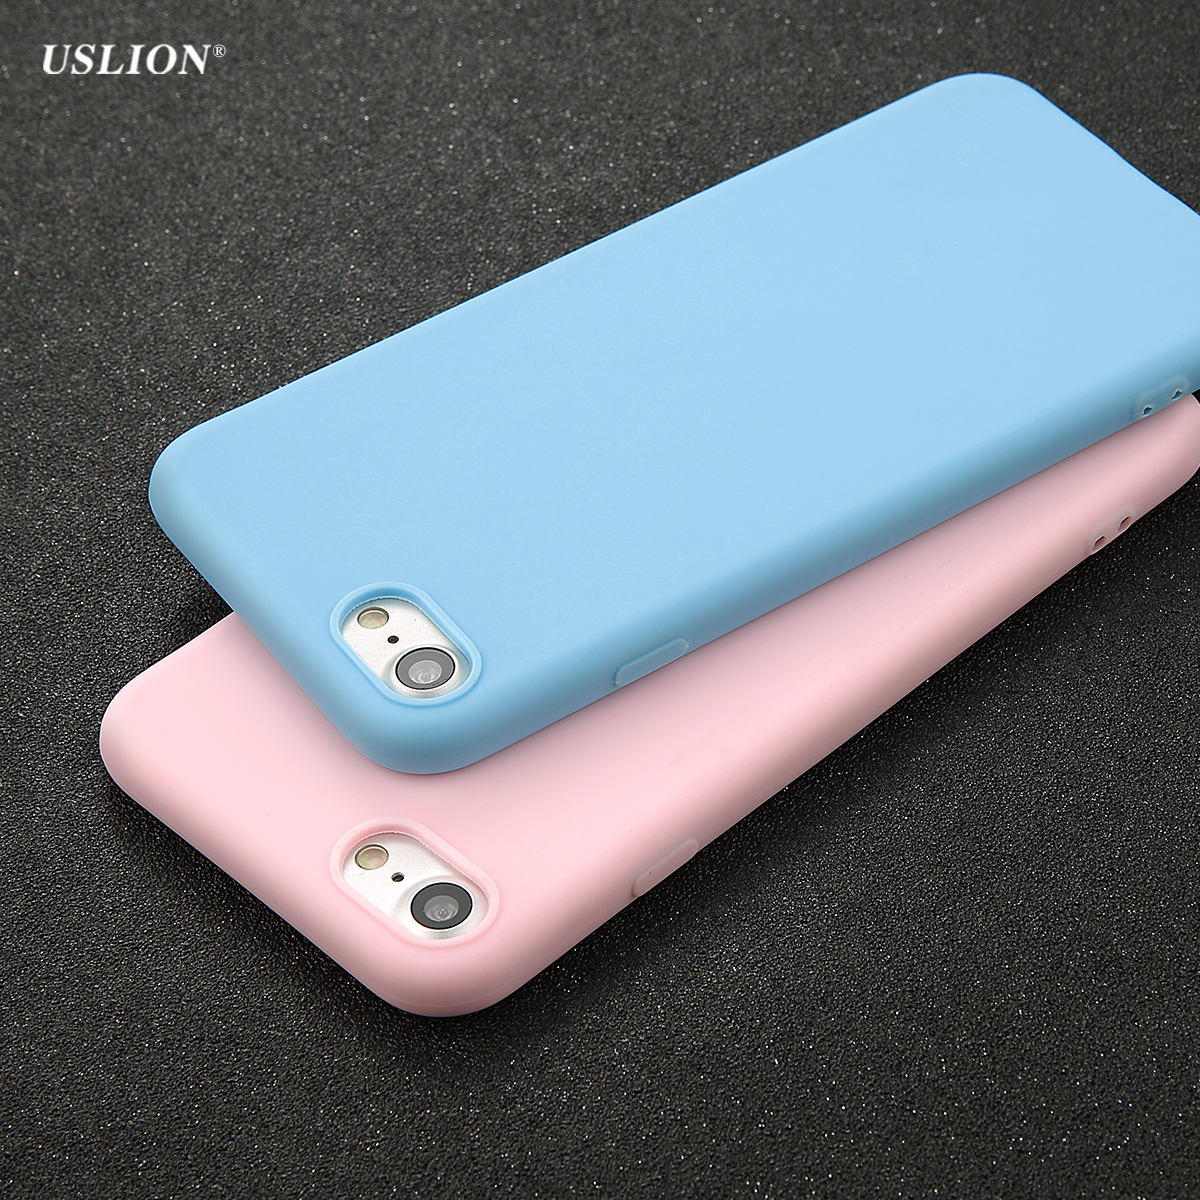 USLION Phone Case For iPhone 7 6 6s 8 X Plus 5 5s SE XR XS Simple Solid Color Ultrathin Soft TPU Cases Candy Color Back Cover cute rabbit style protective silicone back case for iphone 5 5s yellow